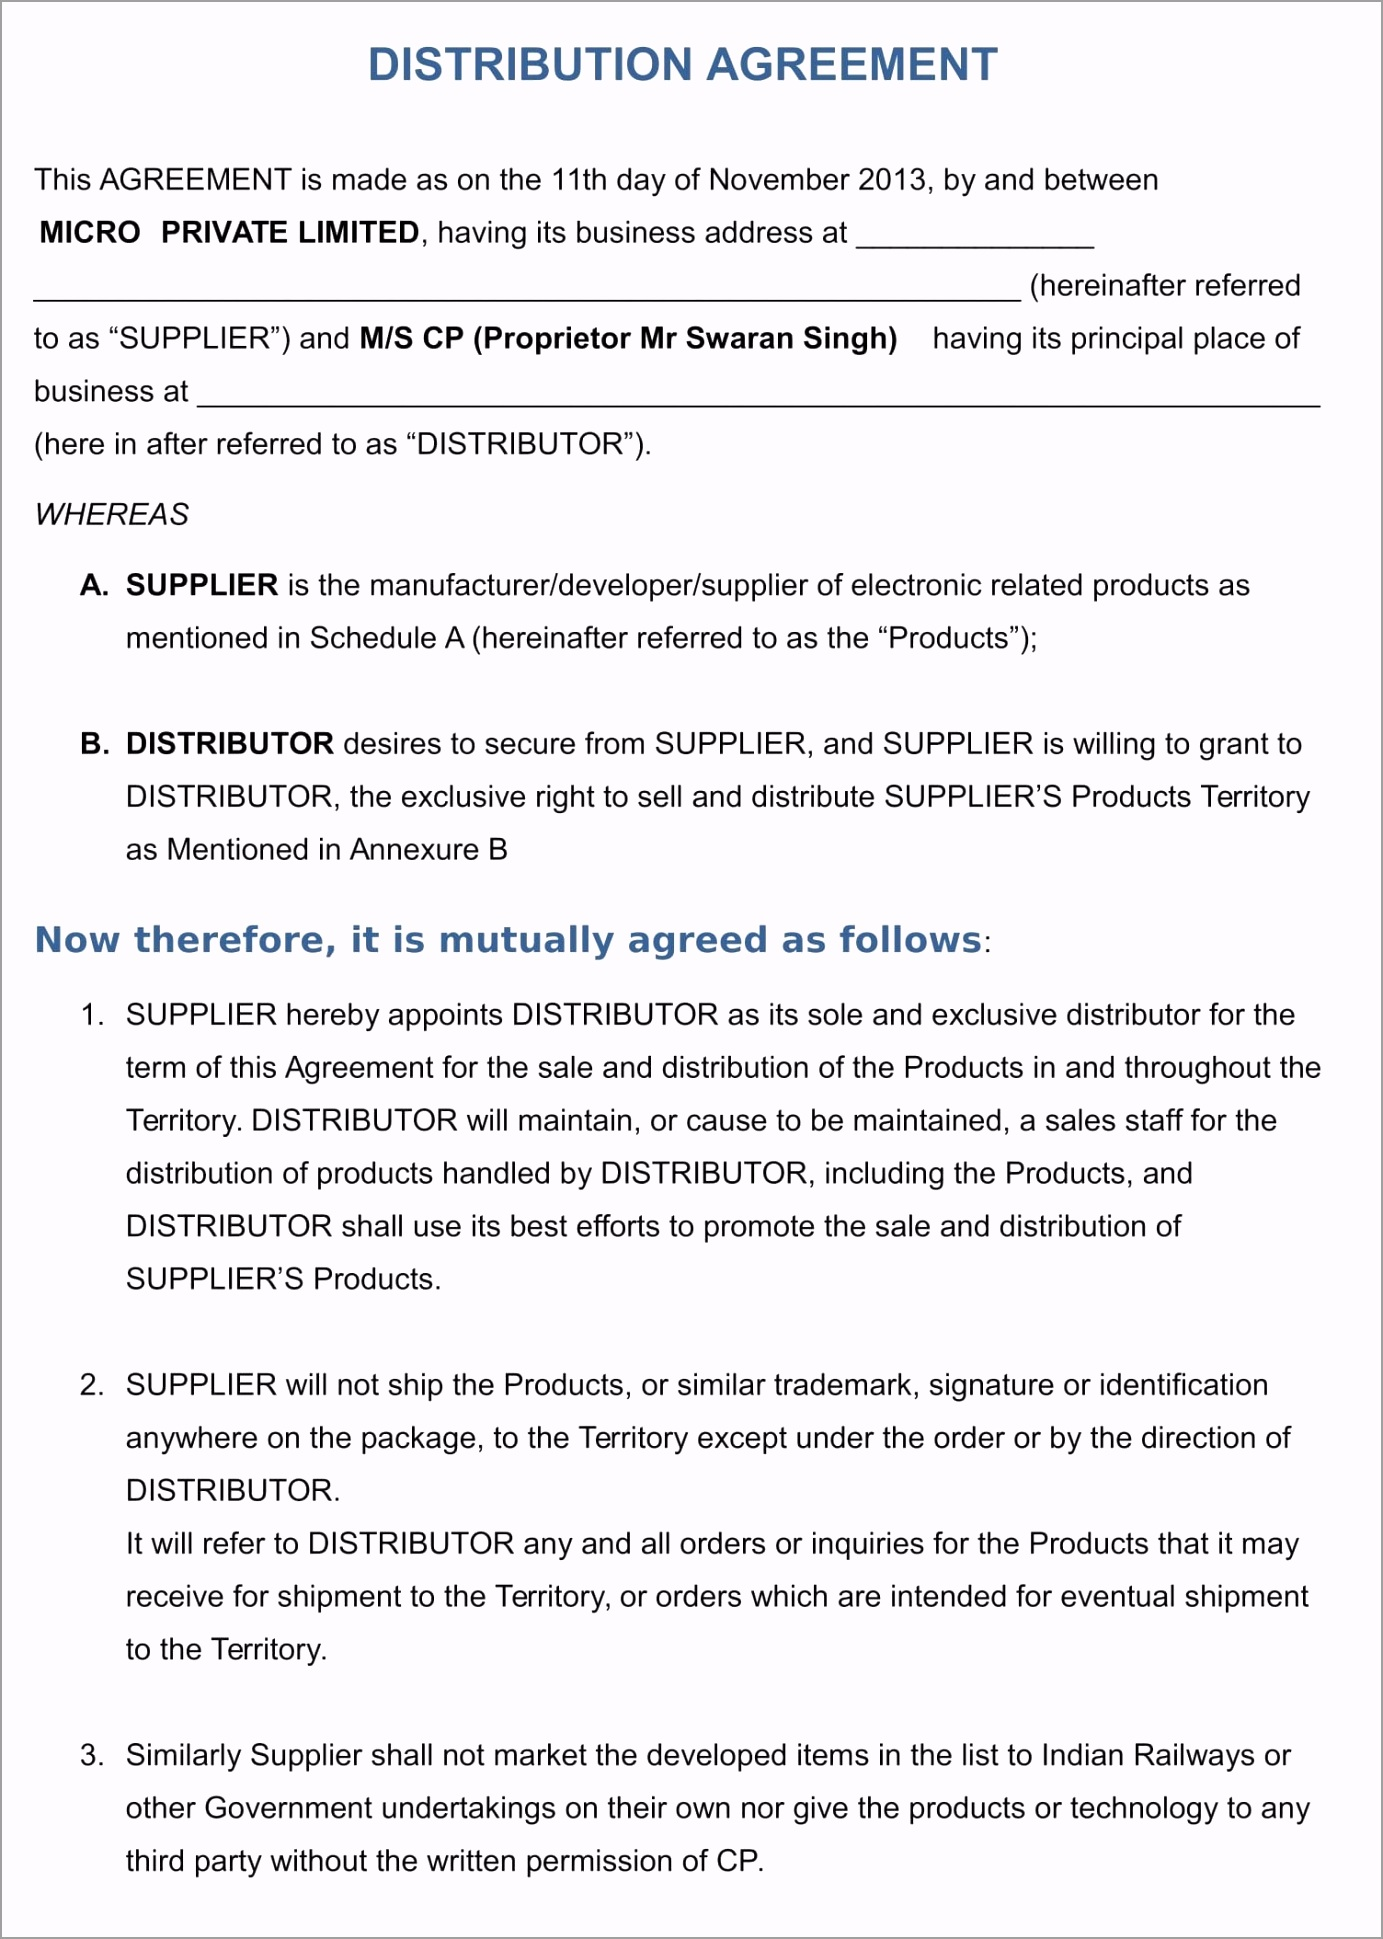 distributor agreement 1 pitaa